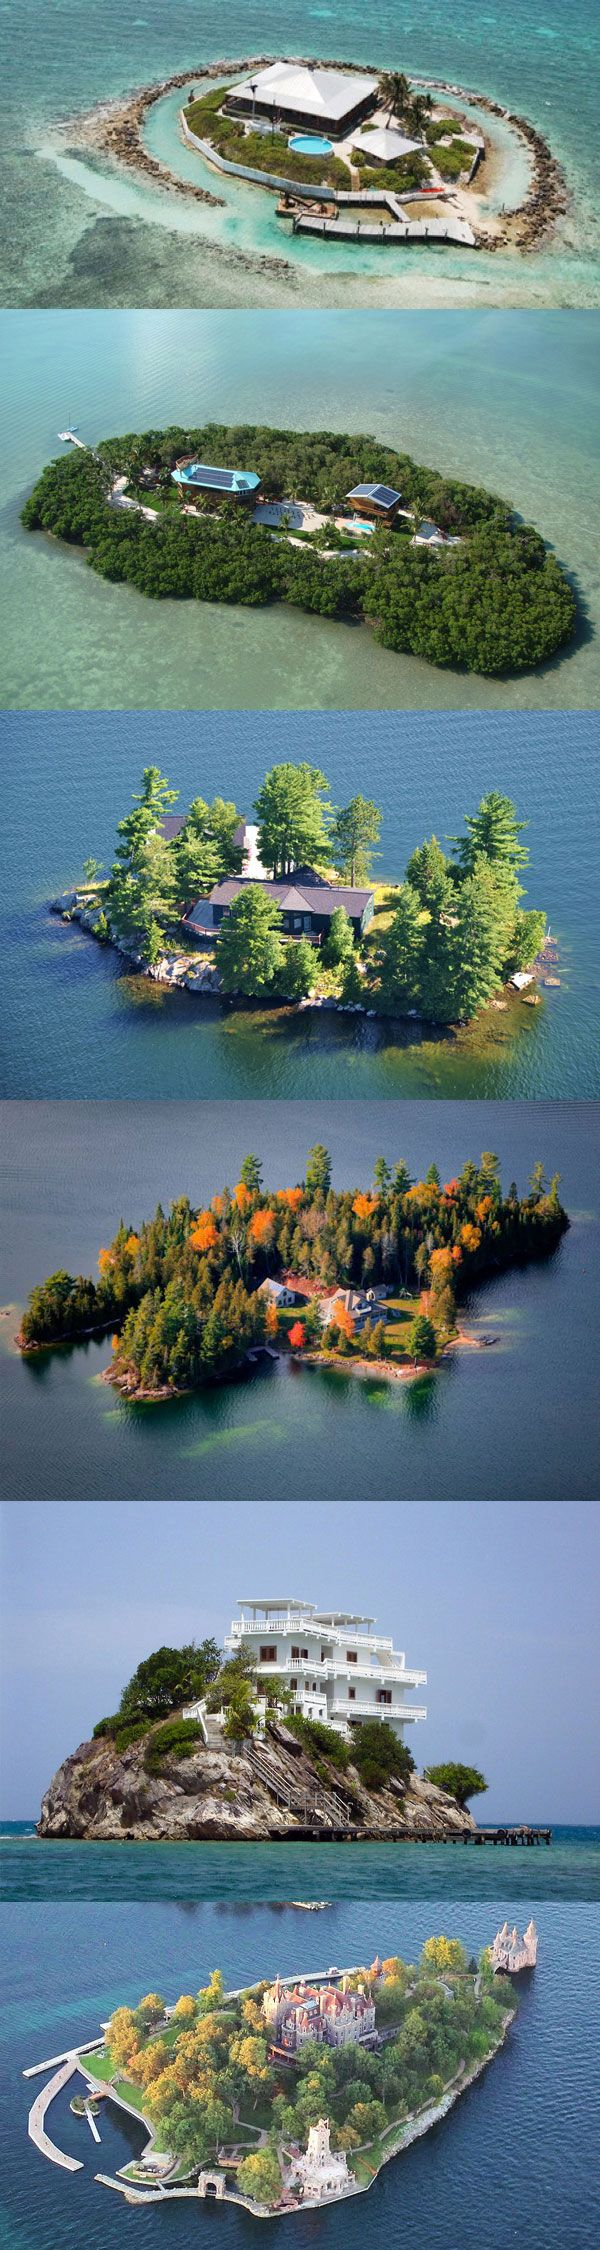 Homes built on private islands... All problems solved buy big island with bridge to mainland / docks / air strip / privite train to playwith / garages / shops / gated community.